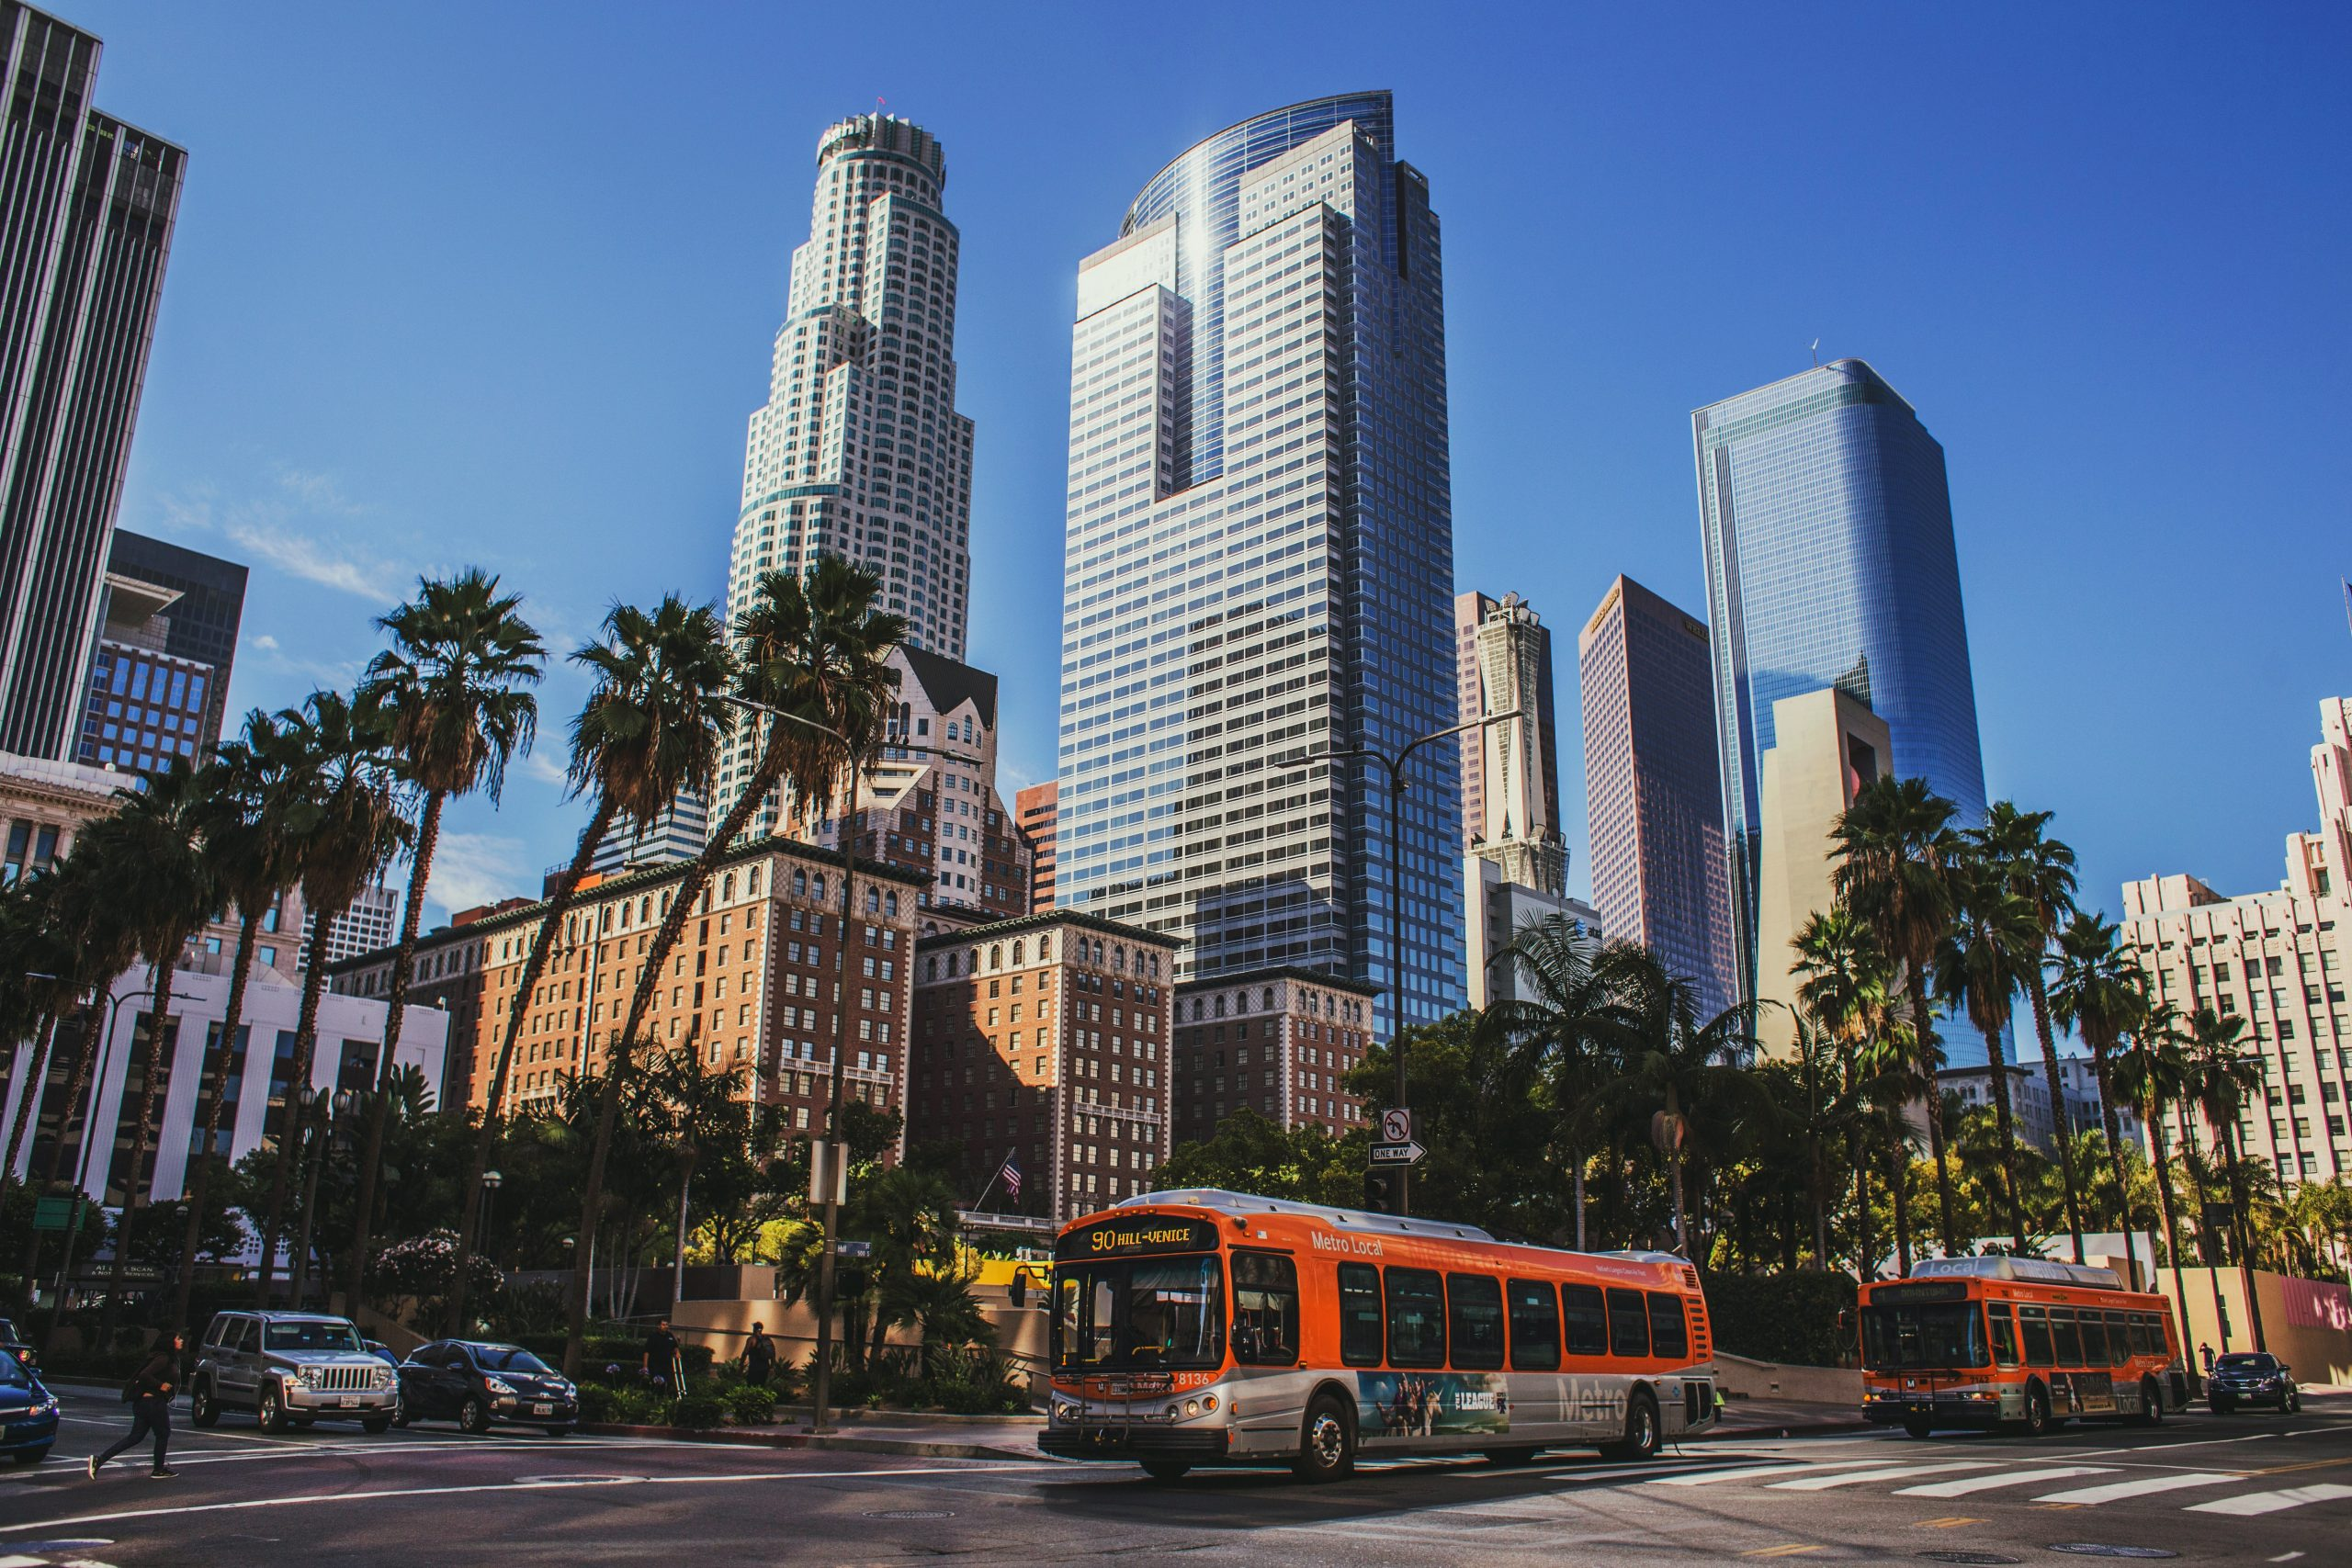 favourite place los angeles photography ideas for instagram